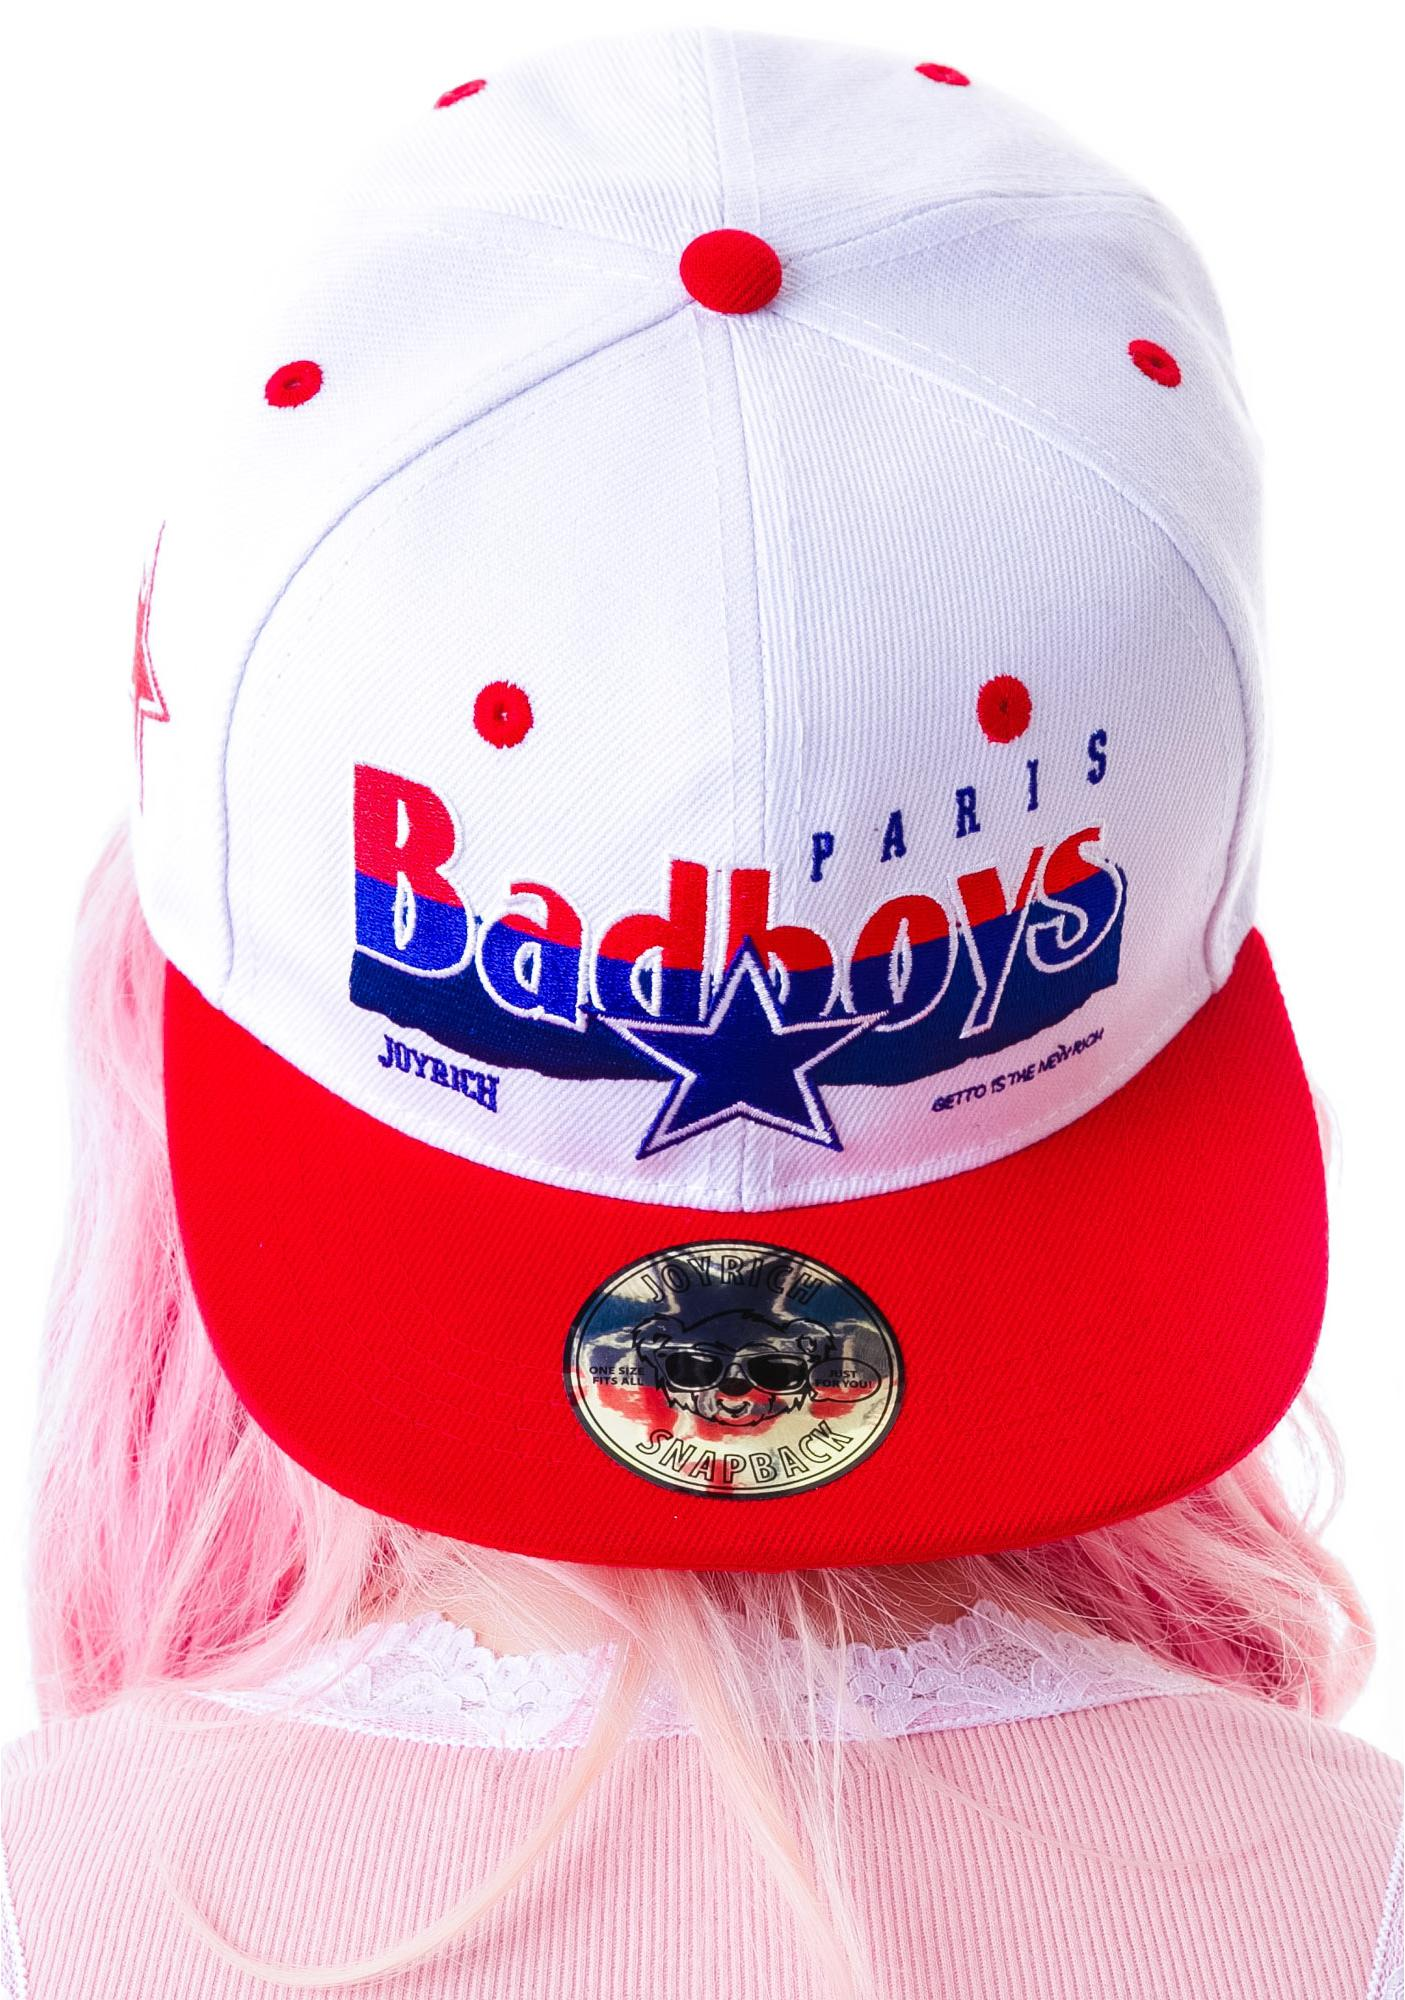 Joyrich Paris Bad Boys Snapback